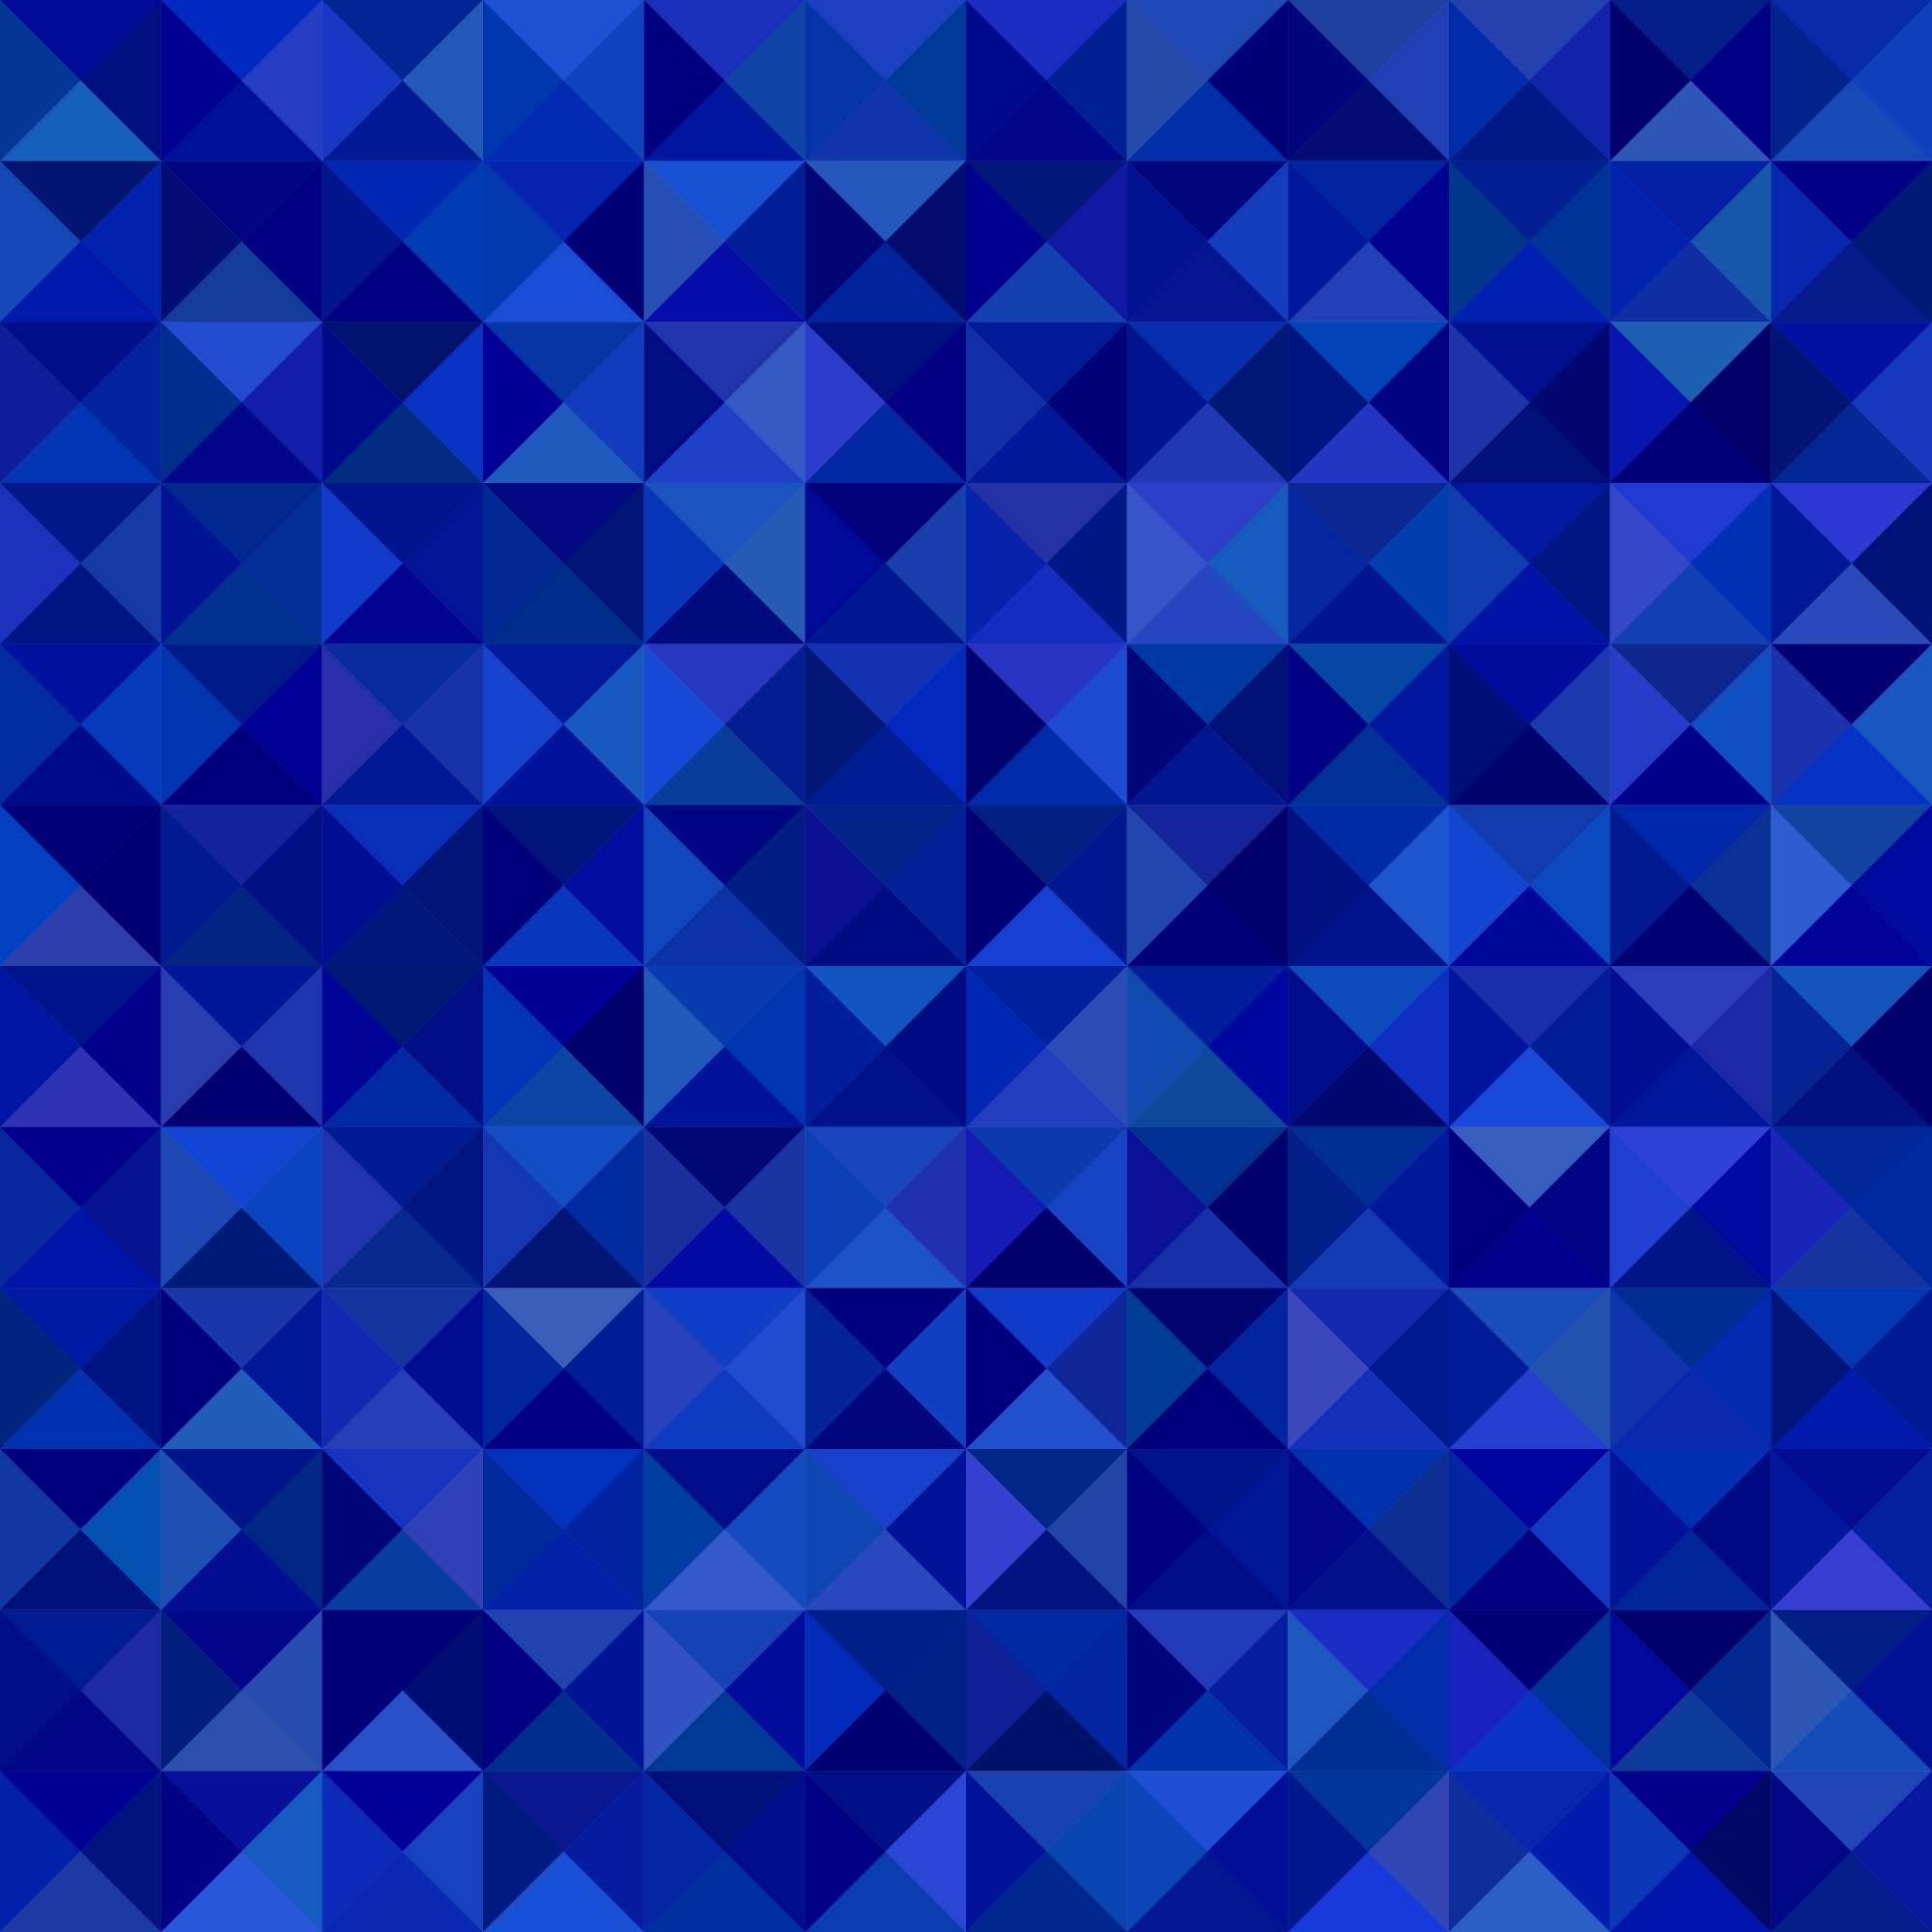 Geometrical abstract triangle mosaic pattern background - vector graphic from triangles in blue tones